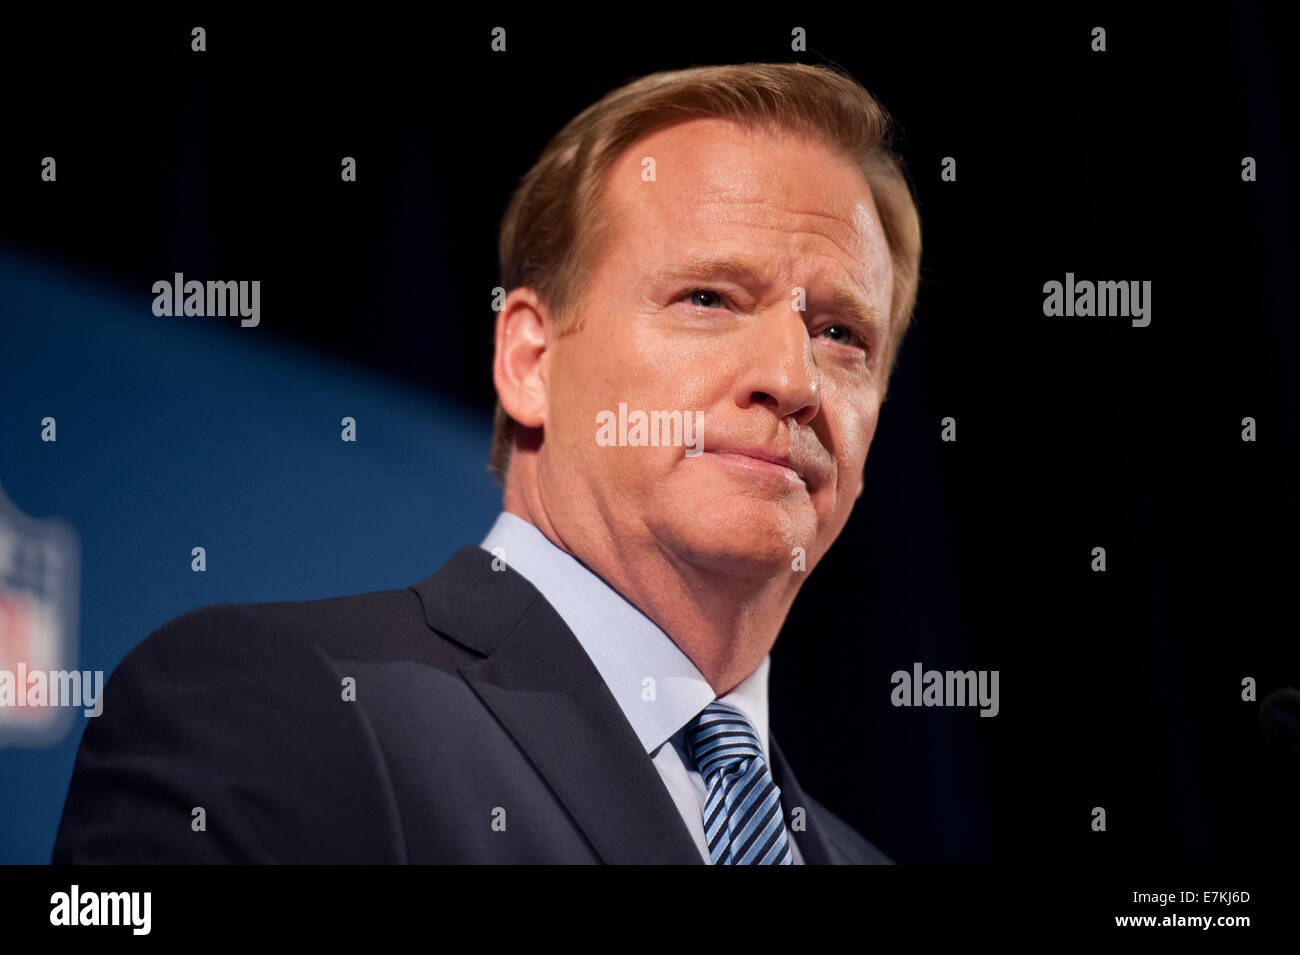 Manhattan, New York, USA. 19th Sep, 2014. NFL Commissioner ROGER GOODELL speaks at a press conference, Hilton Hotel, Stock Photo